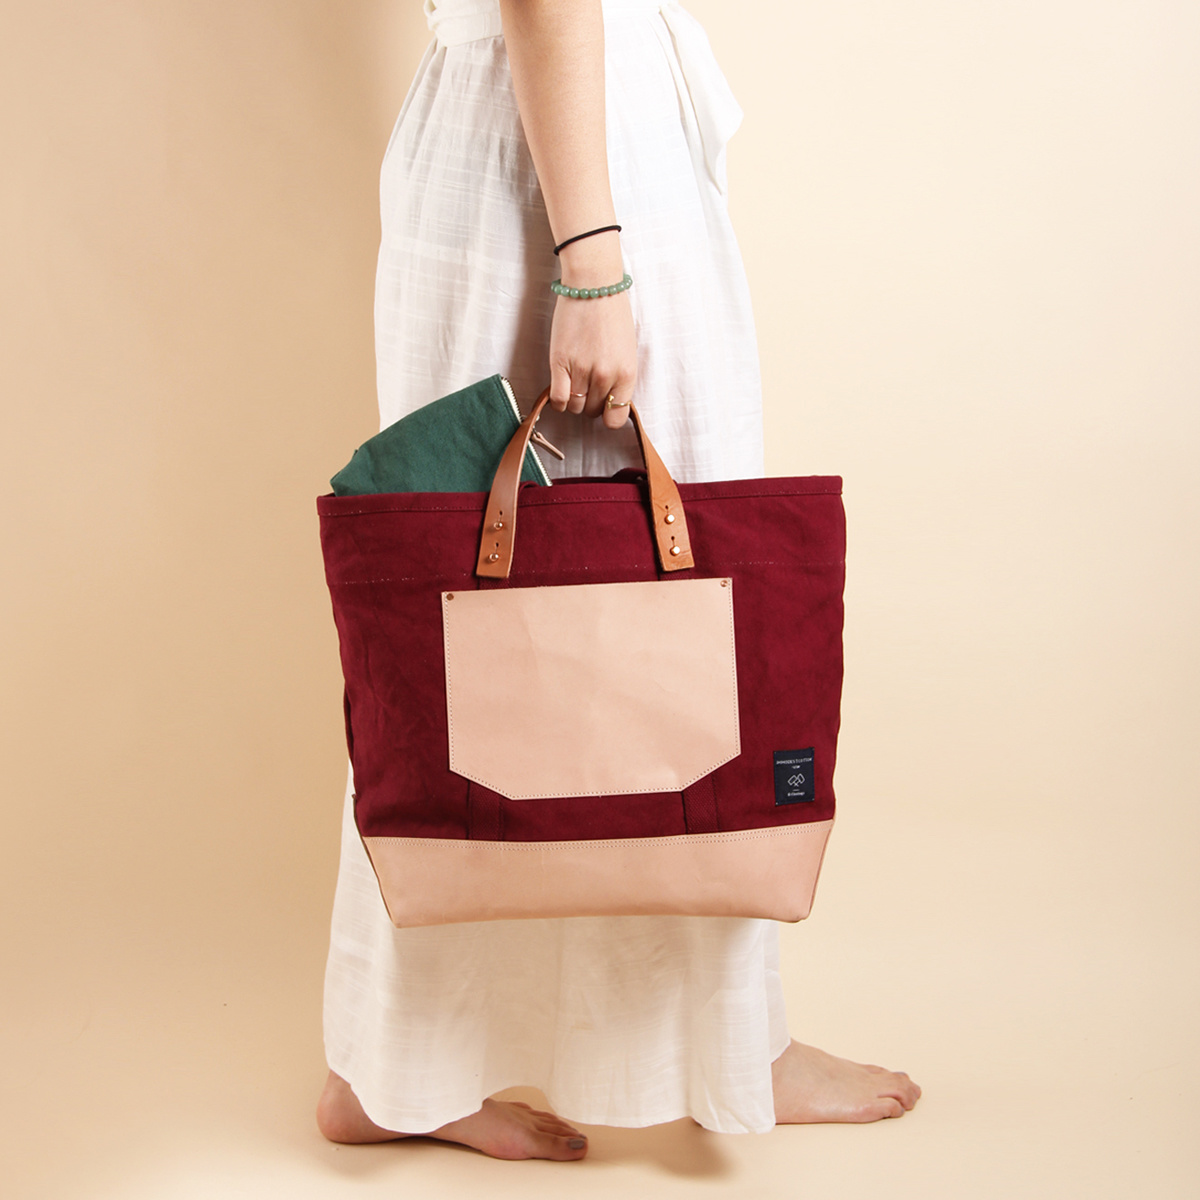 IMMODEST COTTON x Fleabags IMC BA - Plum East West Bucket Tote